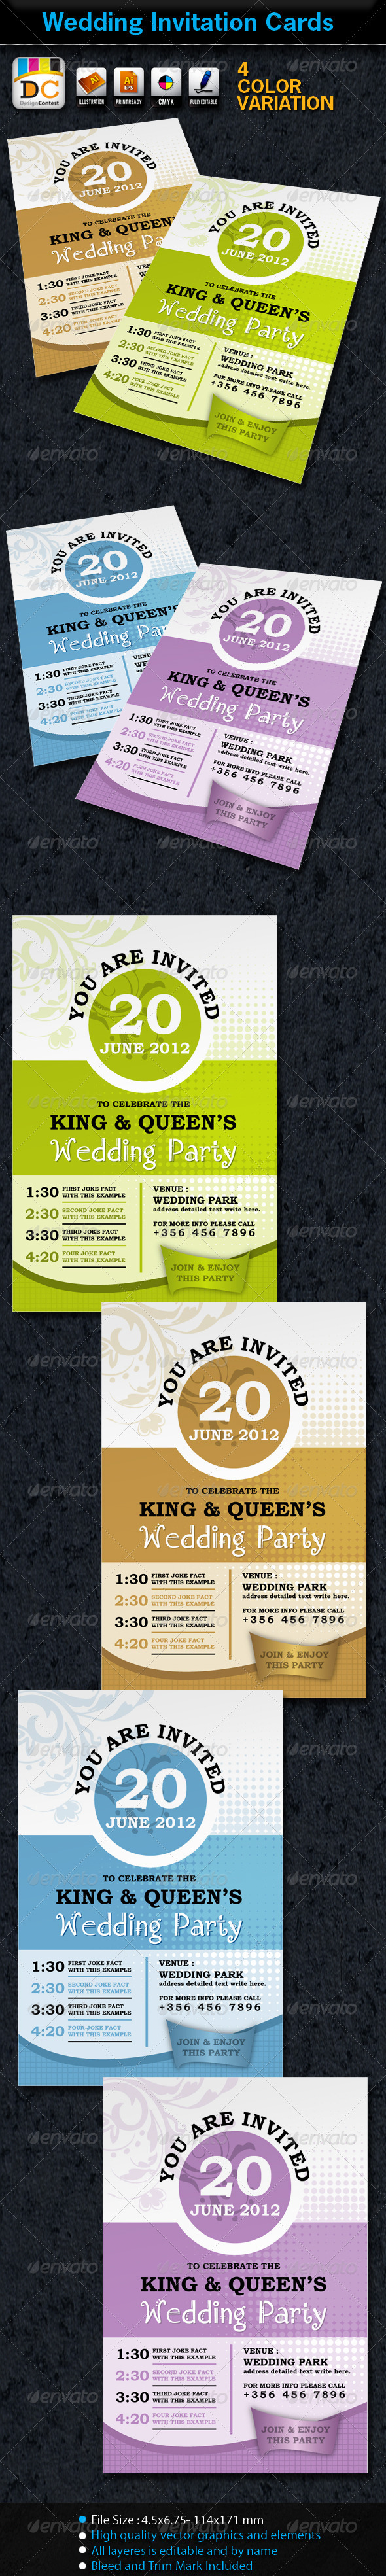 Wedding/Marriage Invitation Card Sets - Invitations Cards & Invites